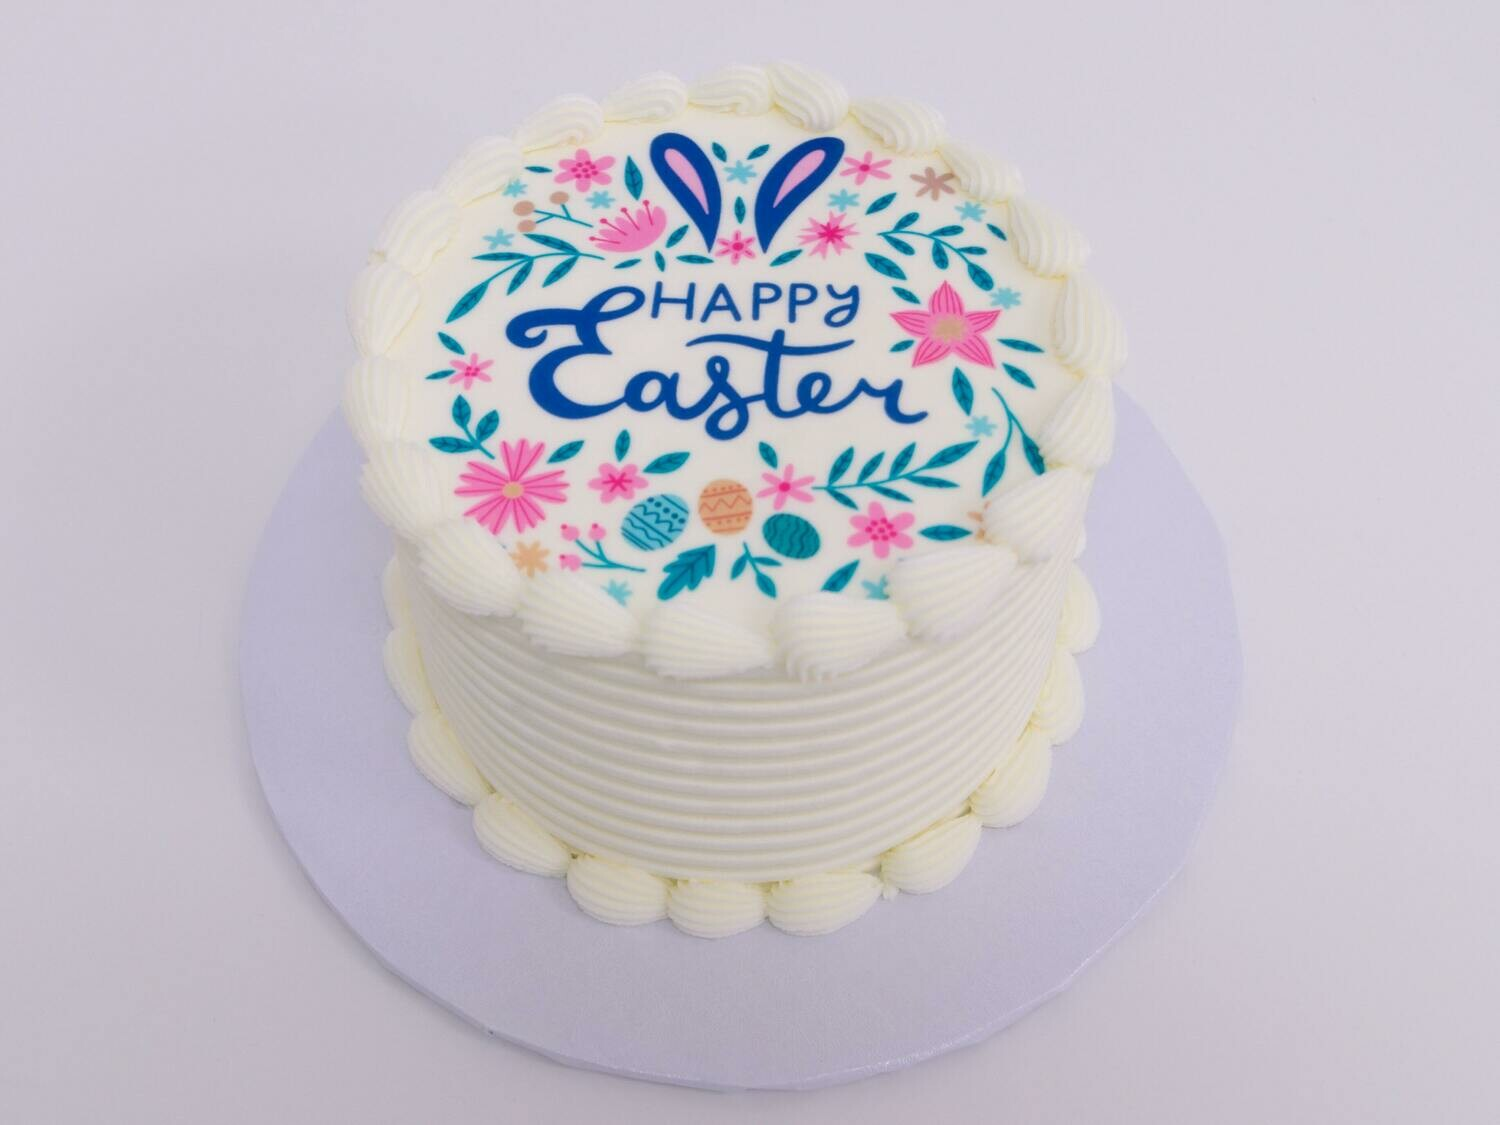 Happy Easter Image Cake